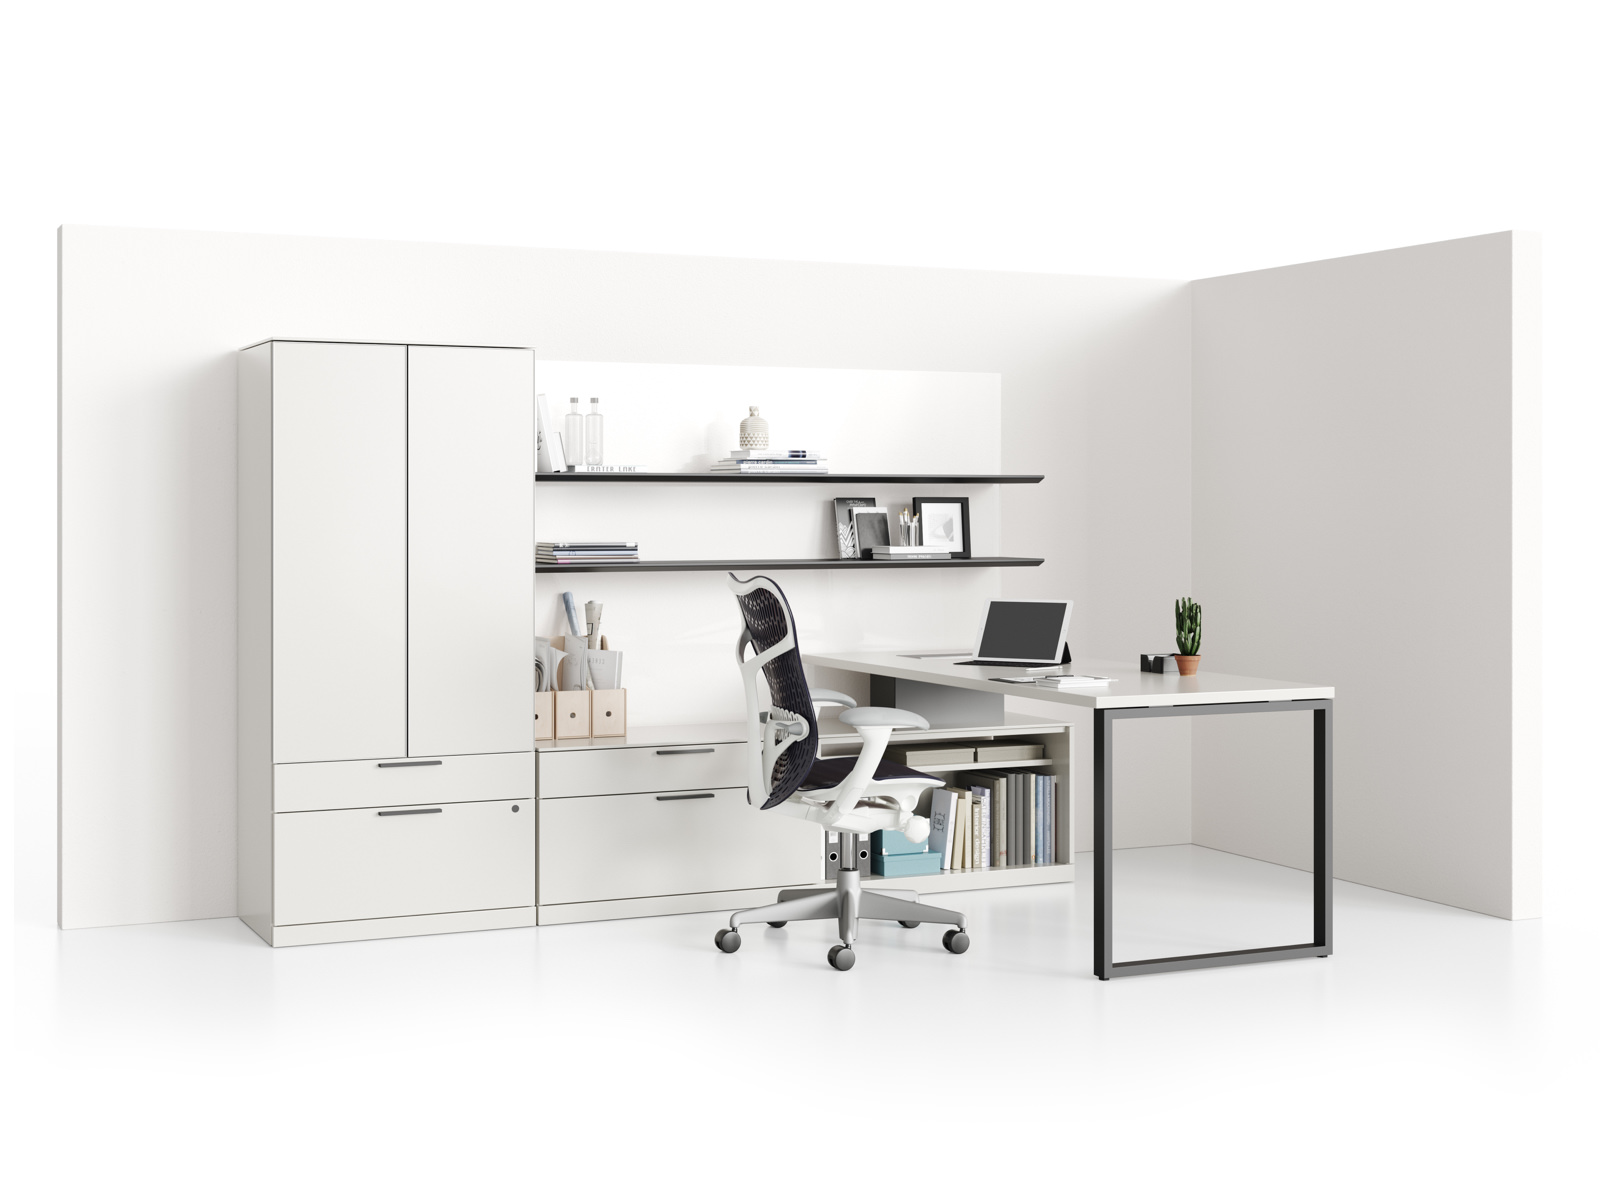 A Canvas Private Office with a white peninsula surface, white storage components, two aluminum floating shelves, and a black Mirra 2 office chair.